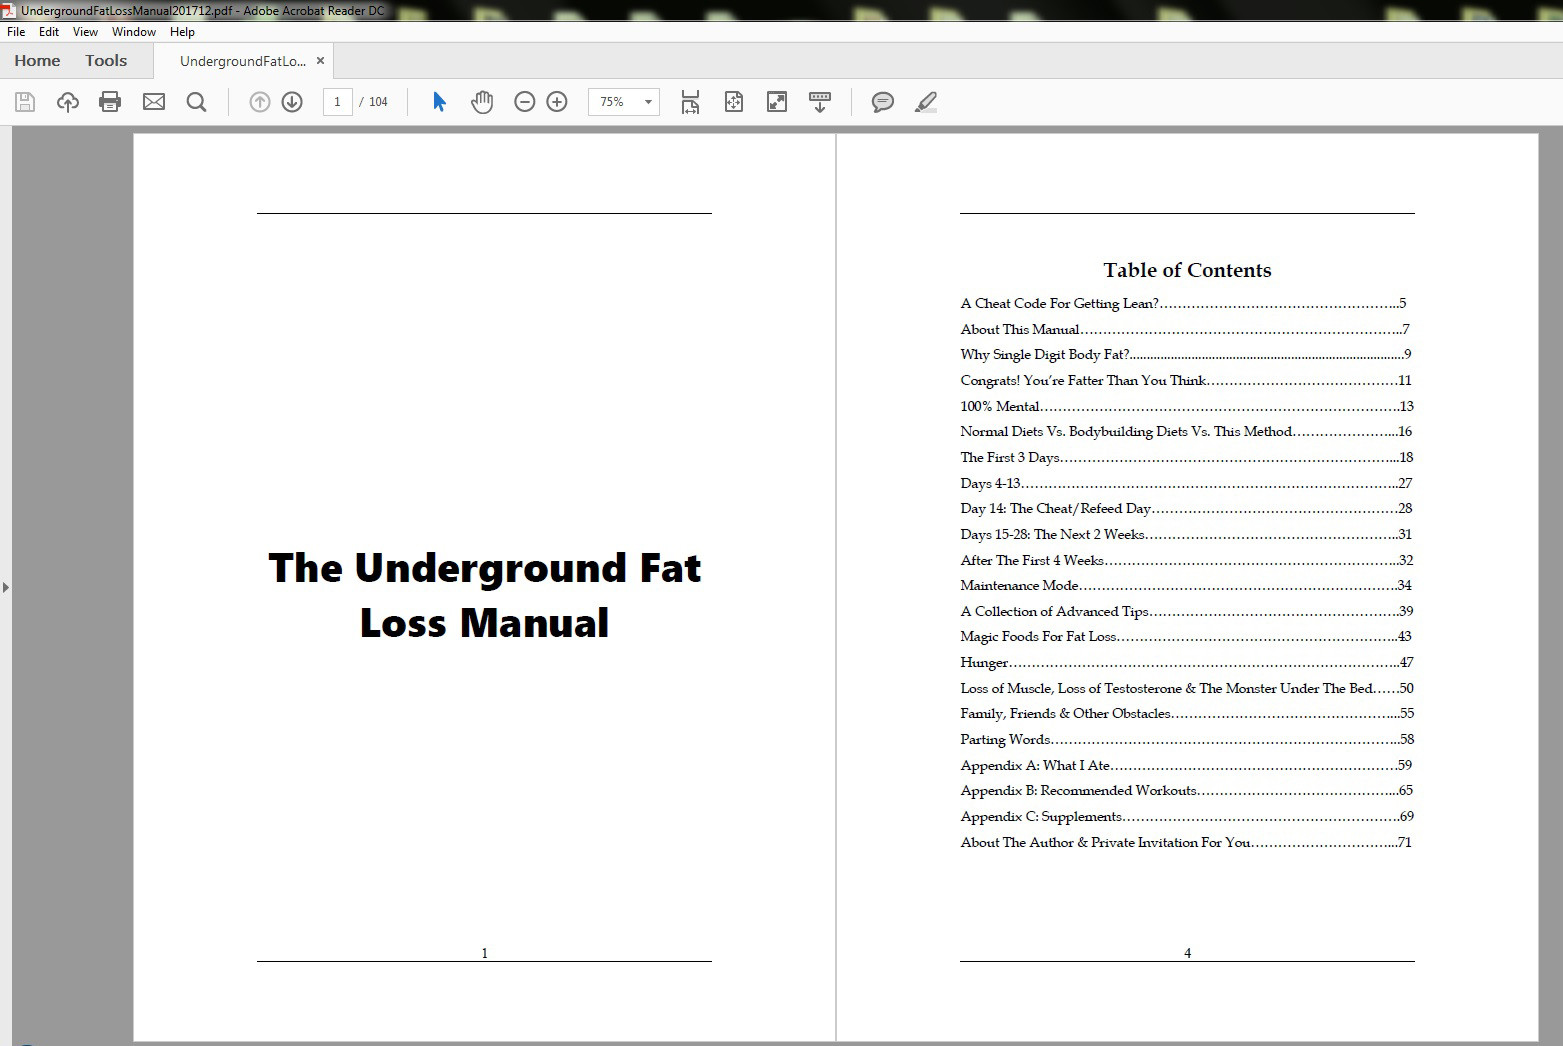 The Underground Fat Loss Manual Table of Contents